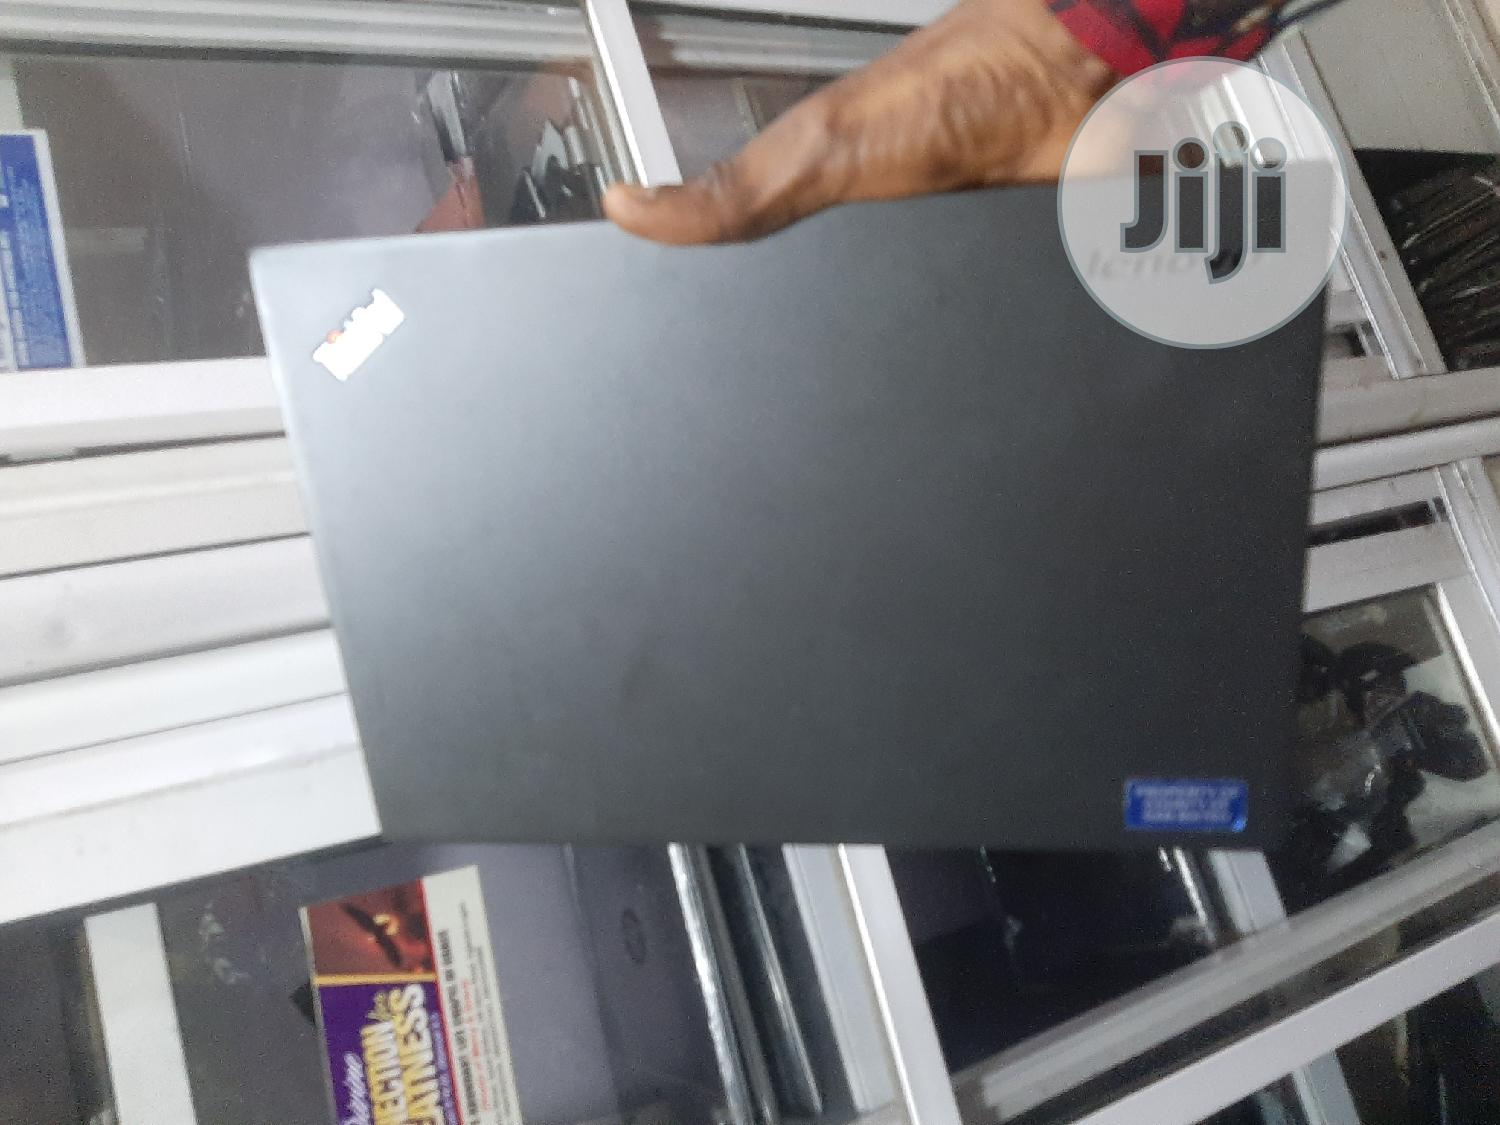 Laptop Lenovo ThinkPad T440s 8GB Intel Core I5 HDD 500GB   Laptops & Computers for sale in Ikeja, Lagos State, Nigeria